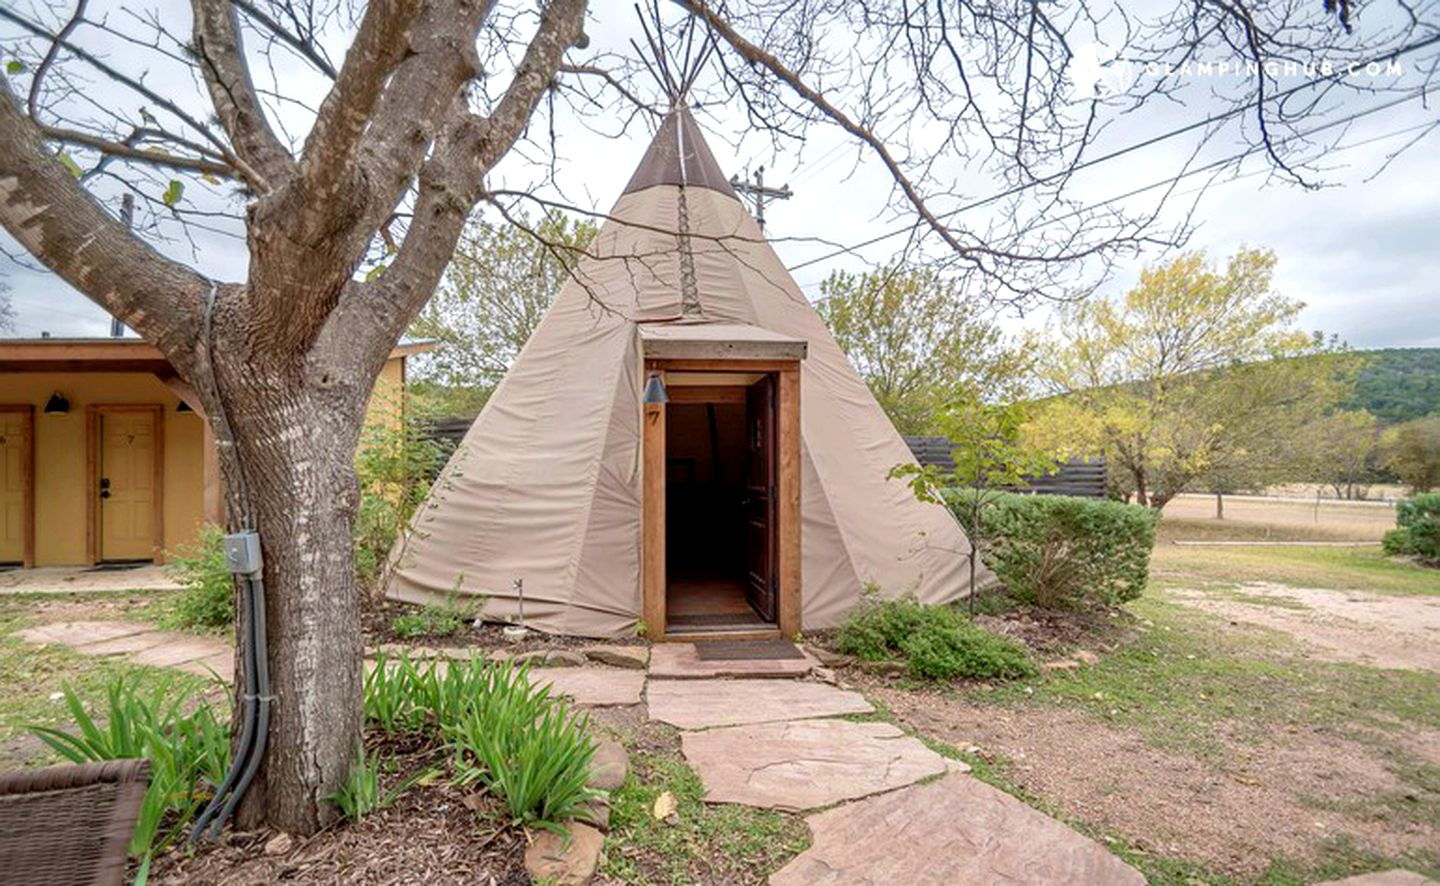 Modern tipi rent in New Braunfels, Texas